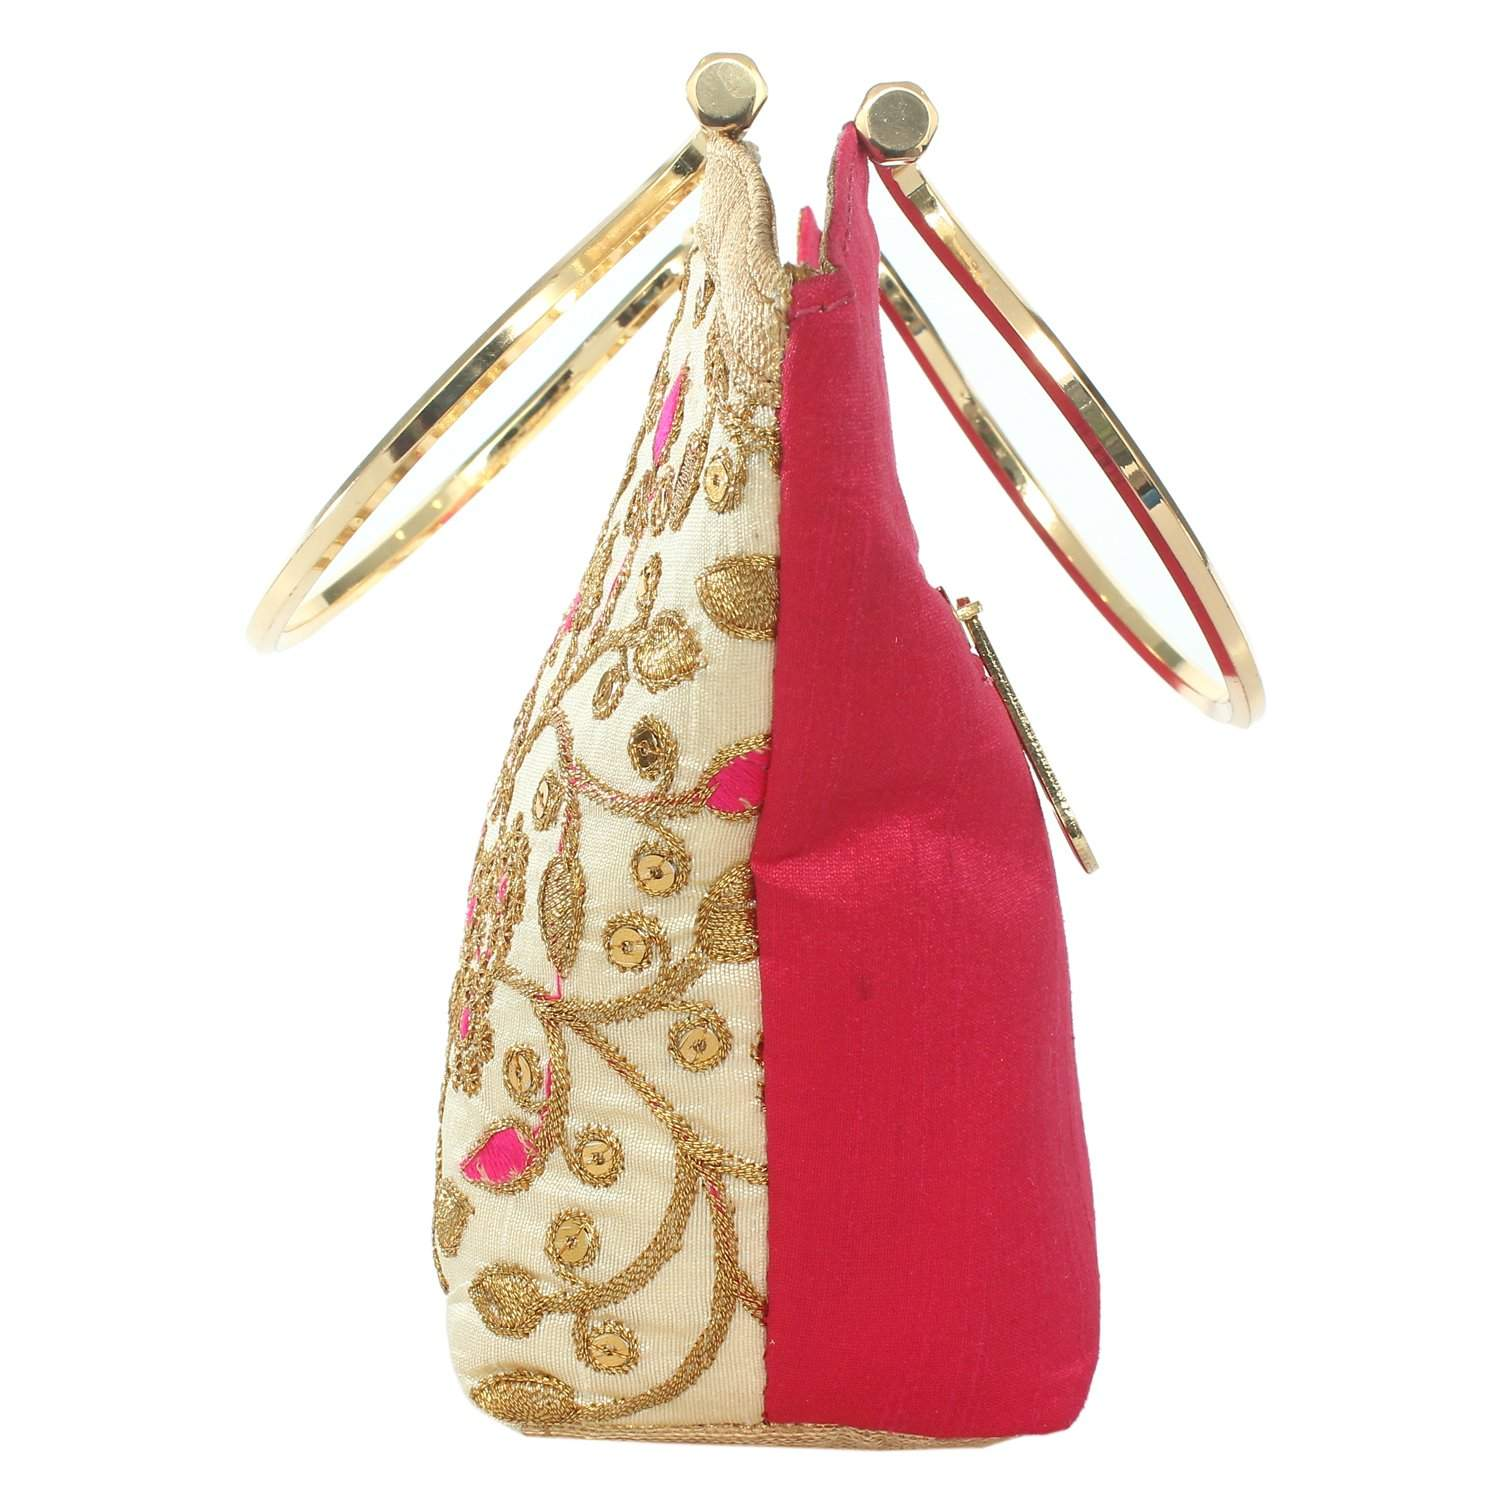 Ethnic Silk Clutch Hand Bag (Pink) - Bagaholics Gift